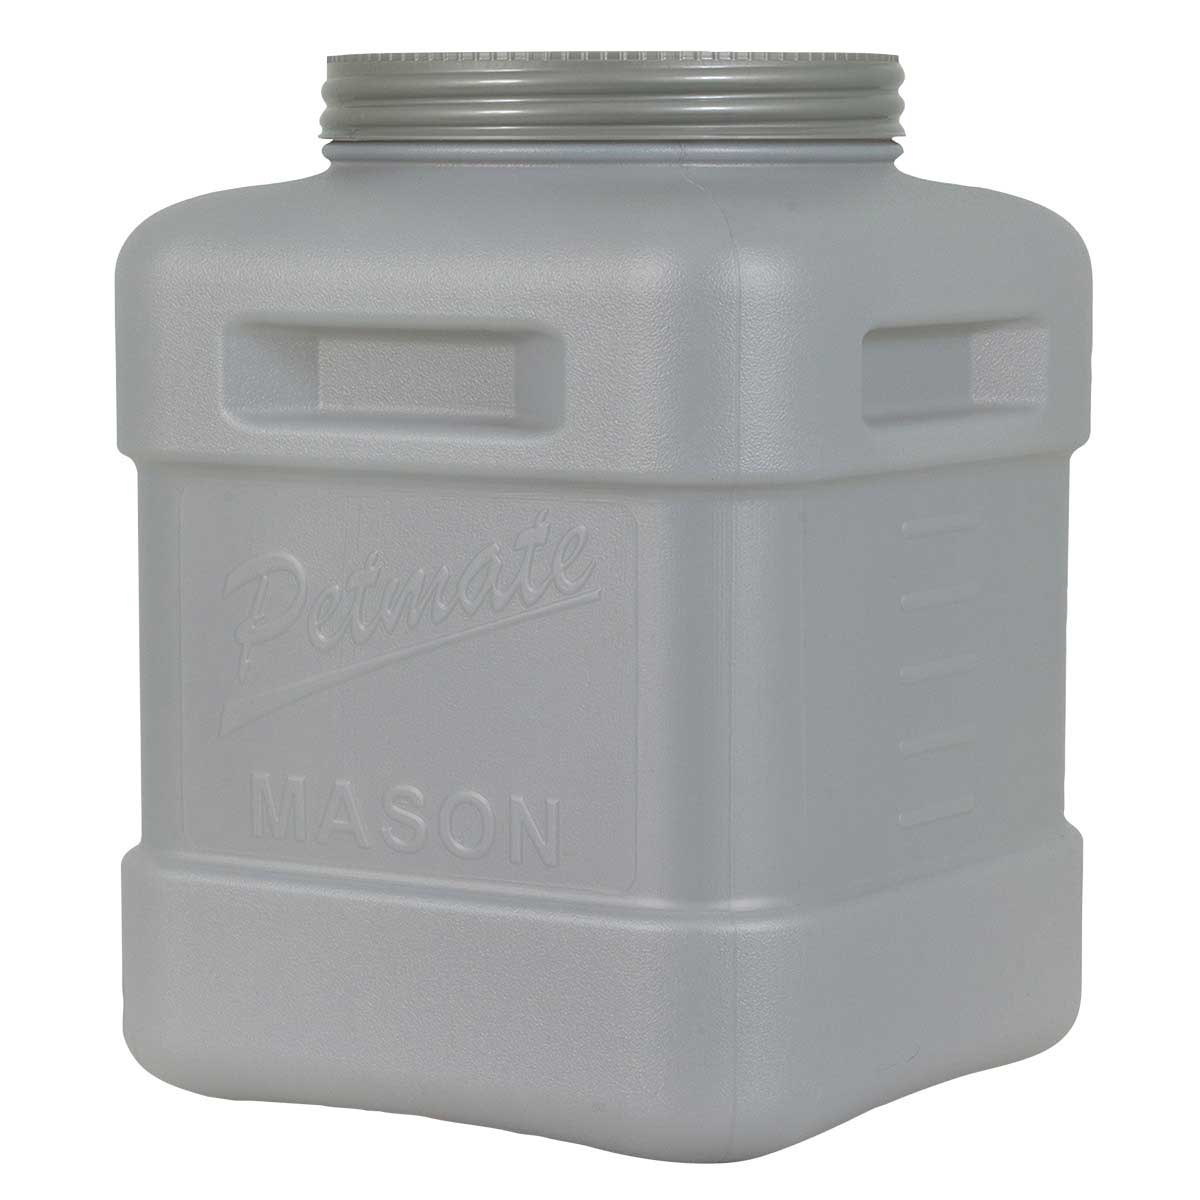 Petmate Food Storage Mason Jar Holds 50 pounds of Kibble - Keeps Dry Dog Food Fresh